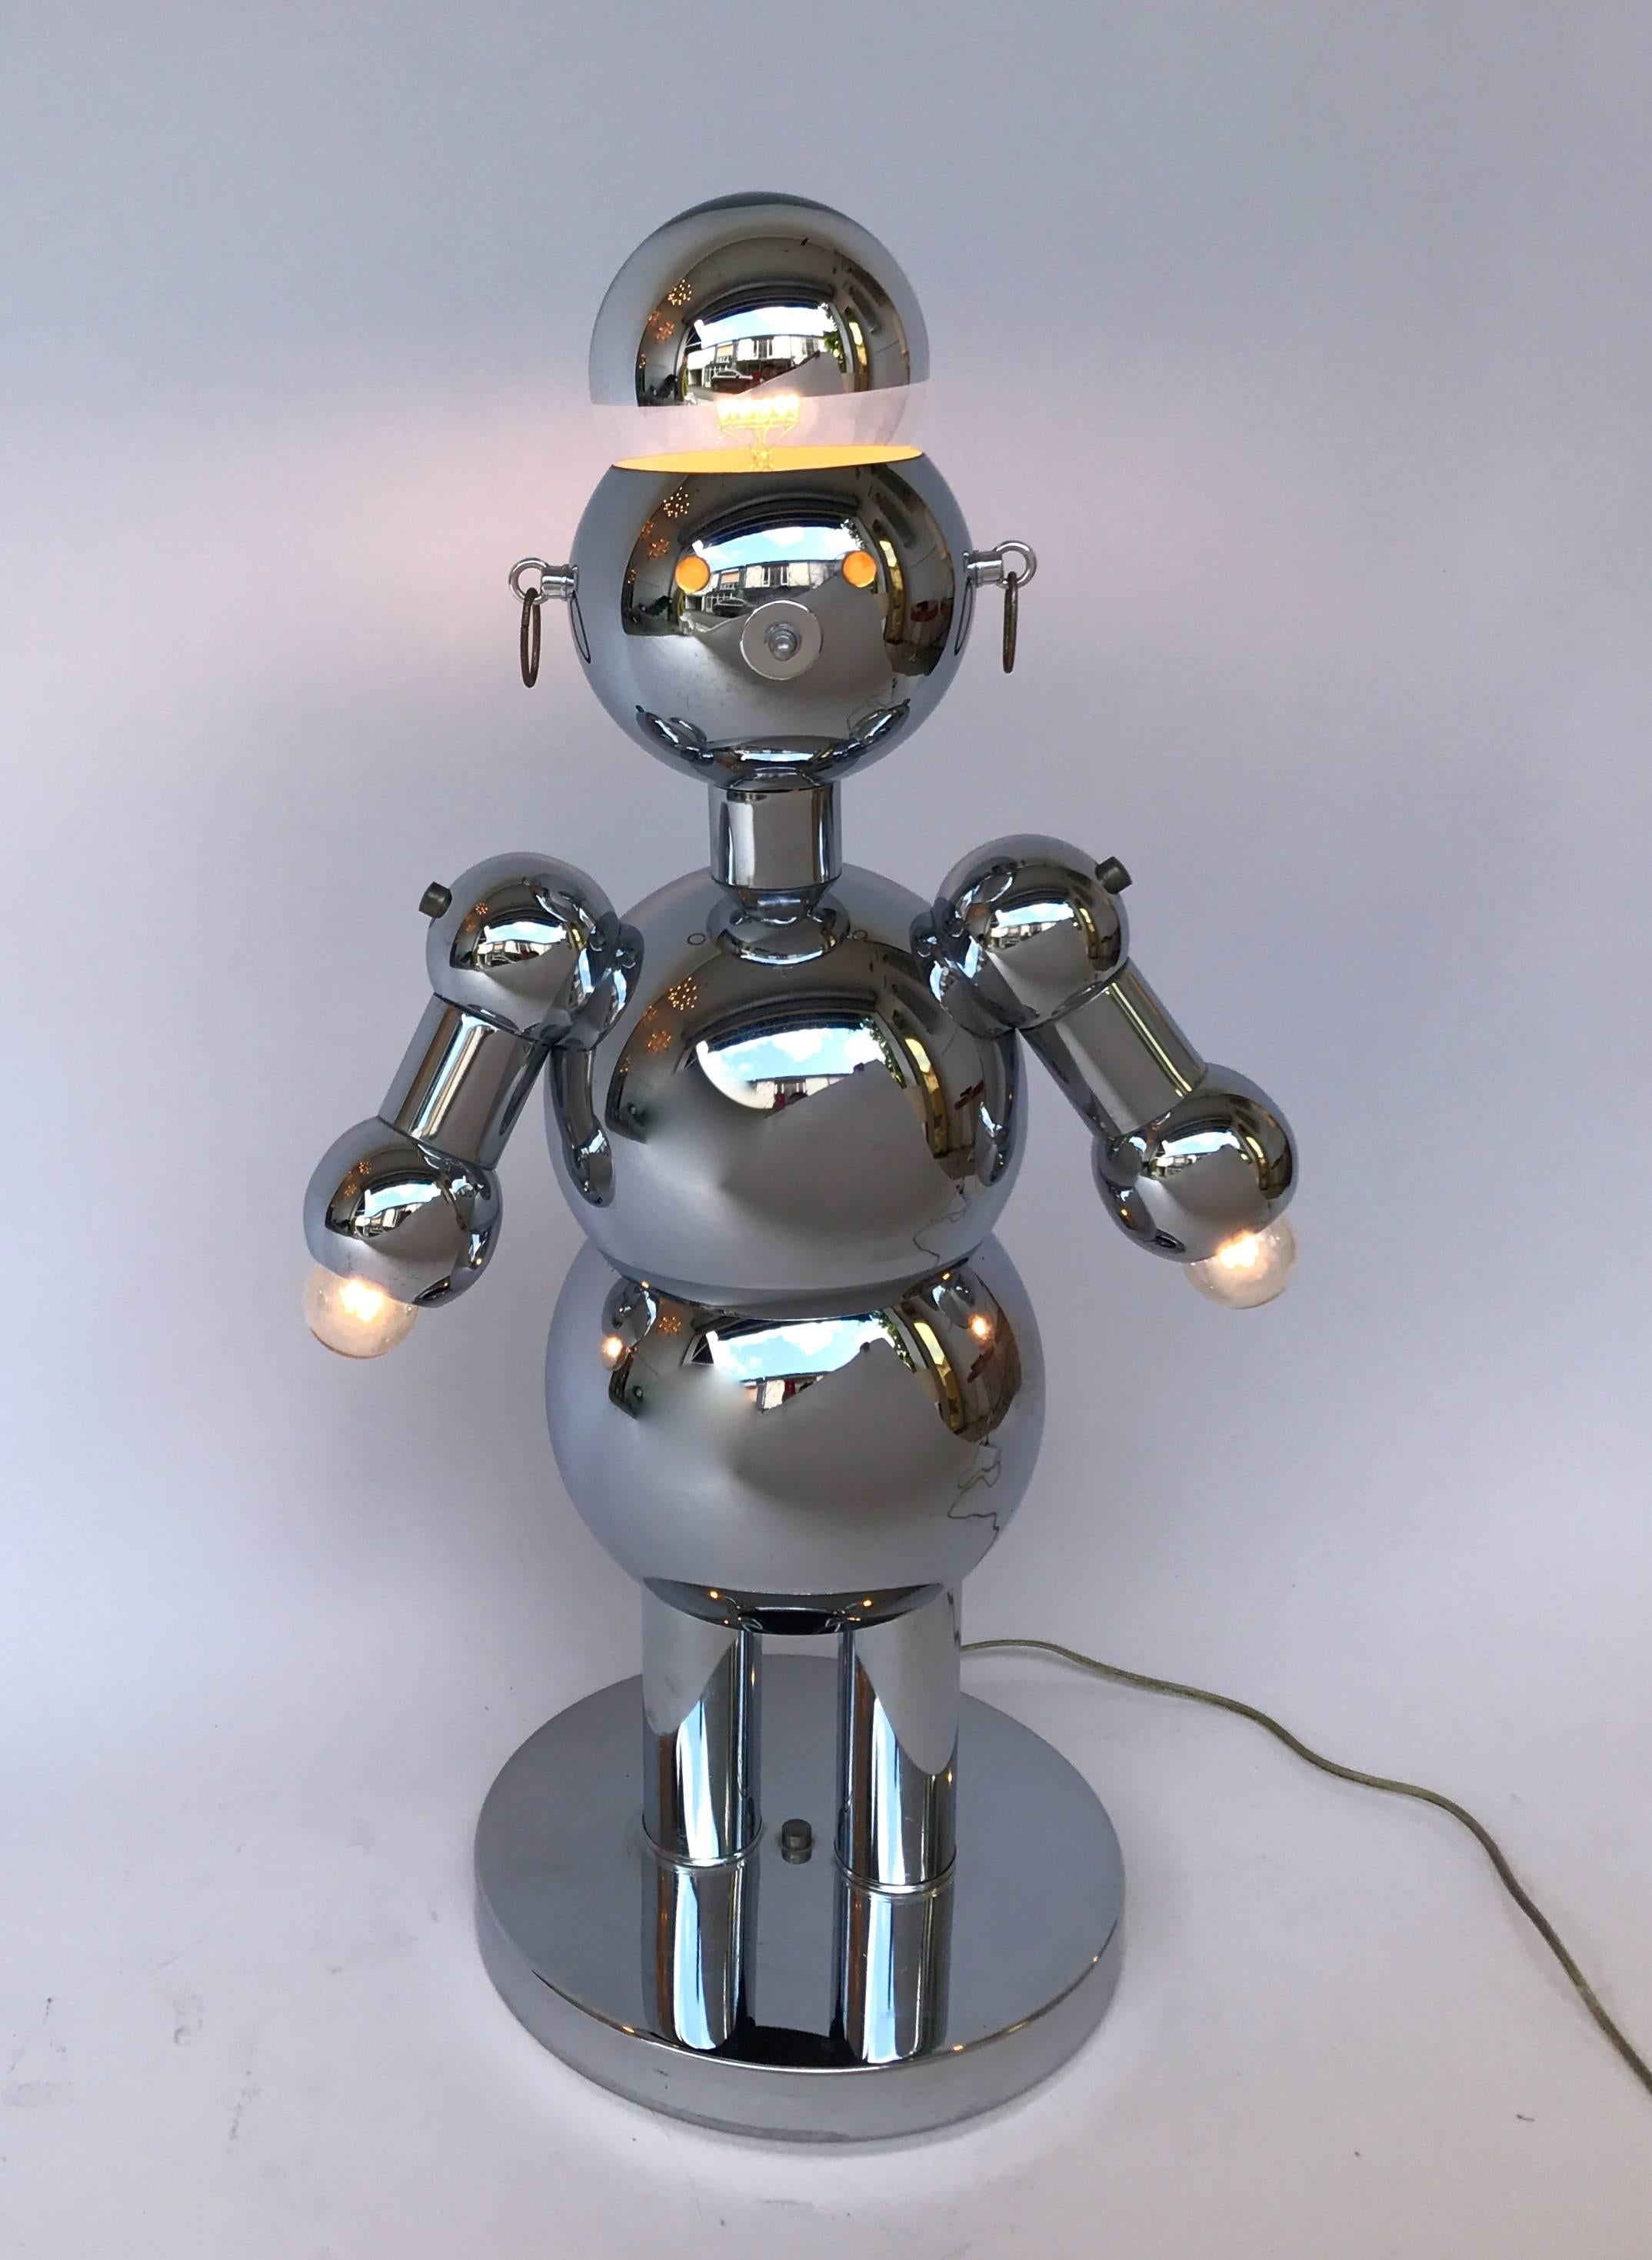 diy lamp robot homemade to build lightg how plumbg a making copper pipe lamps s